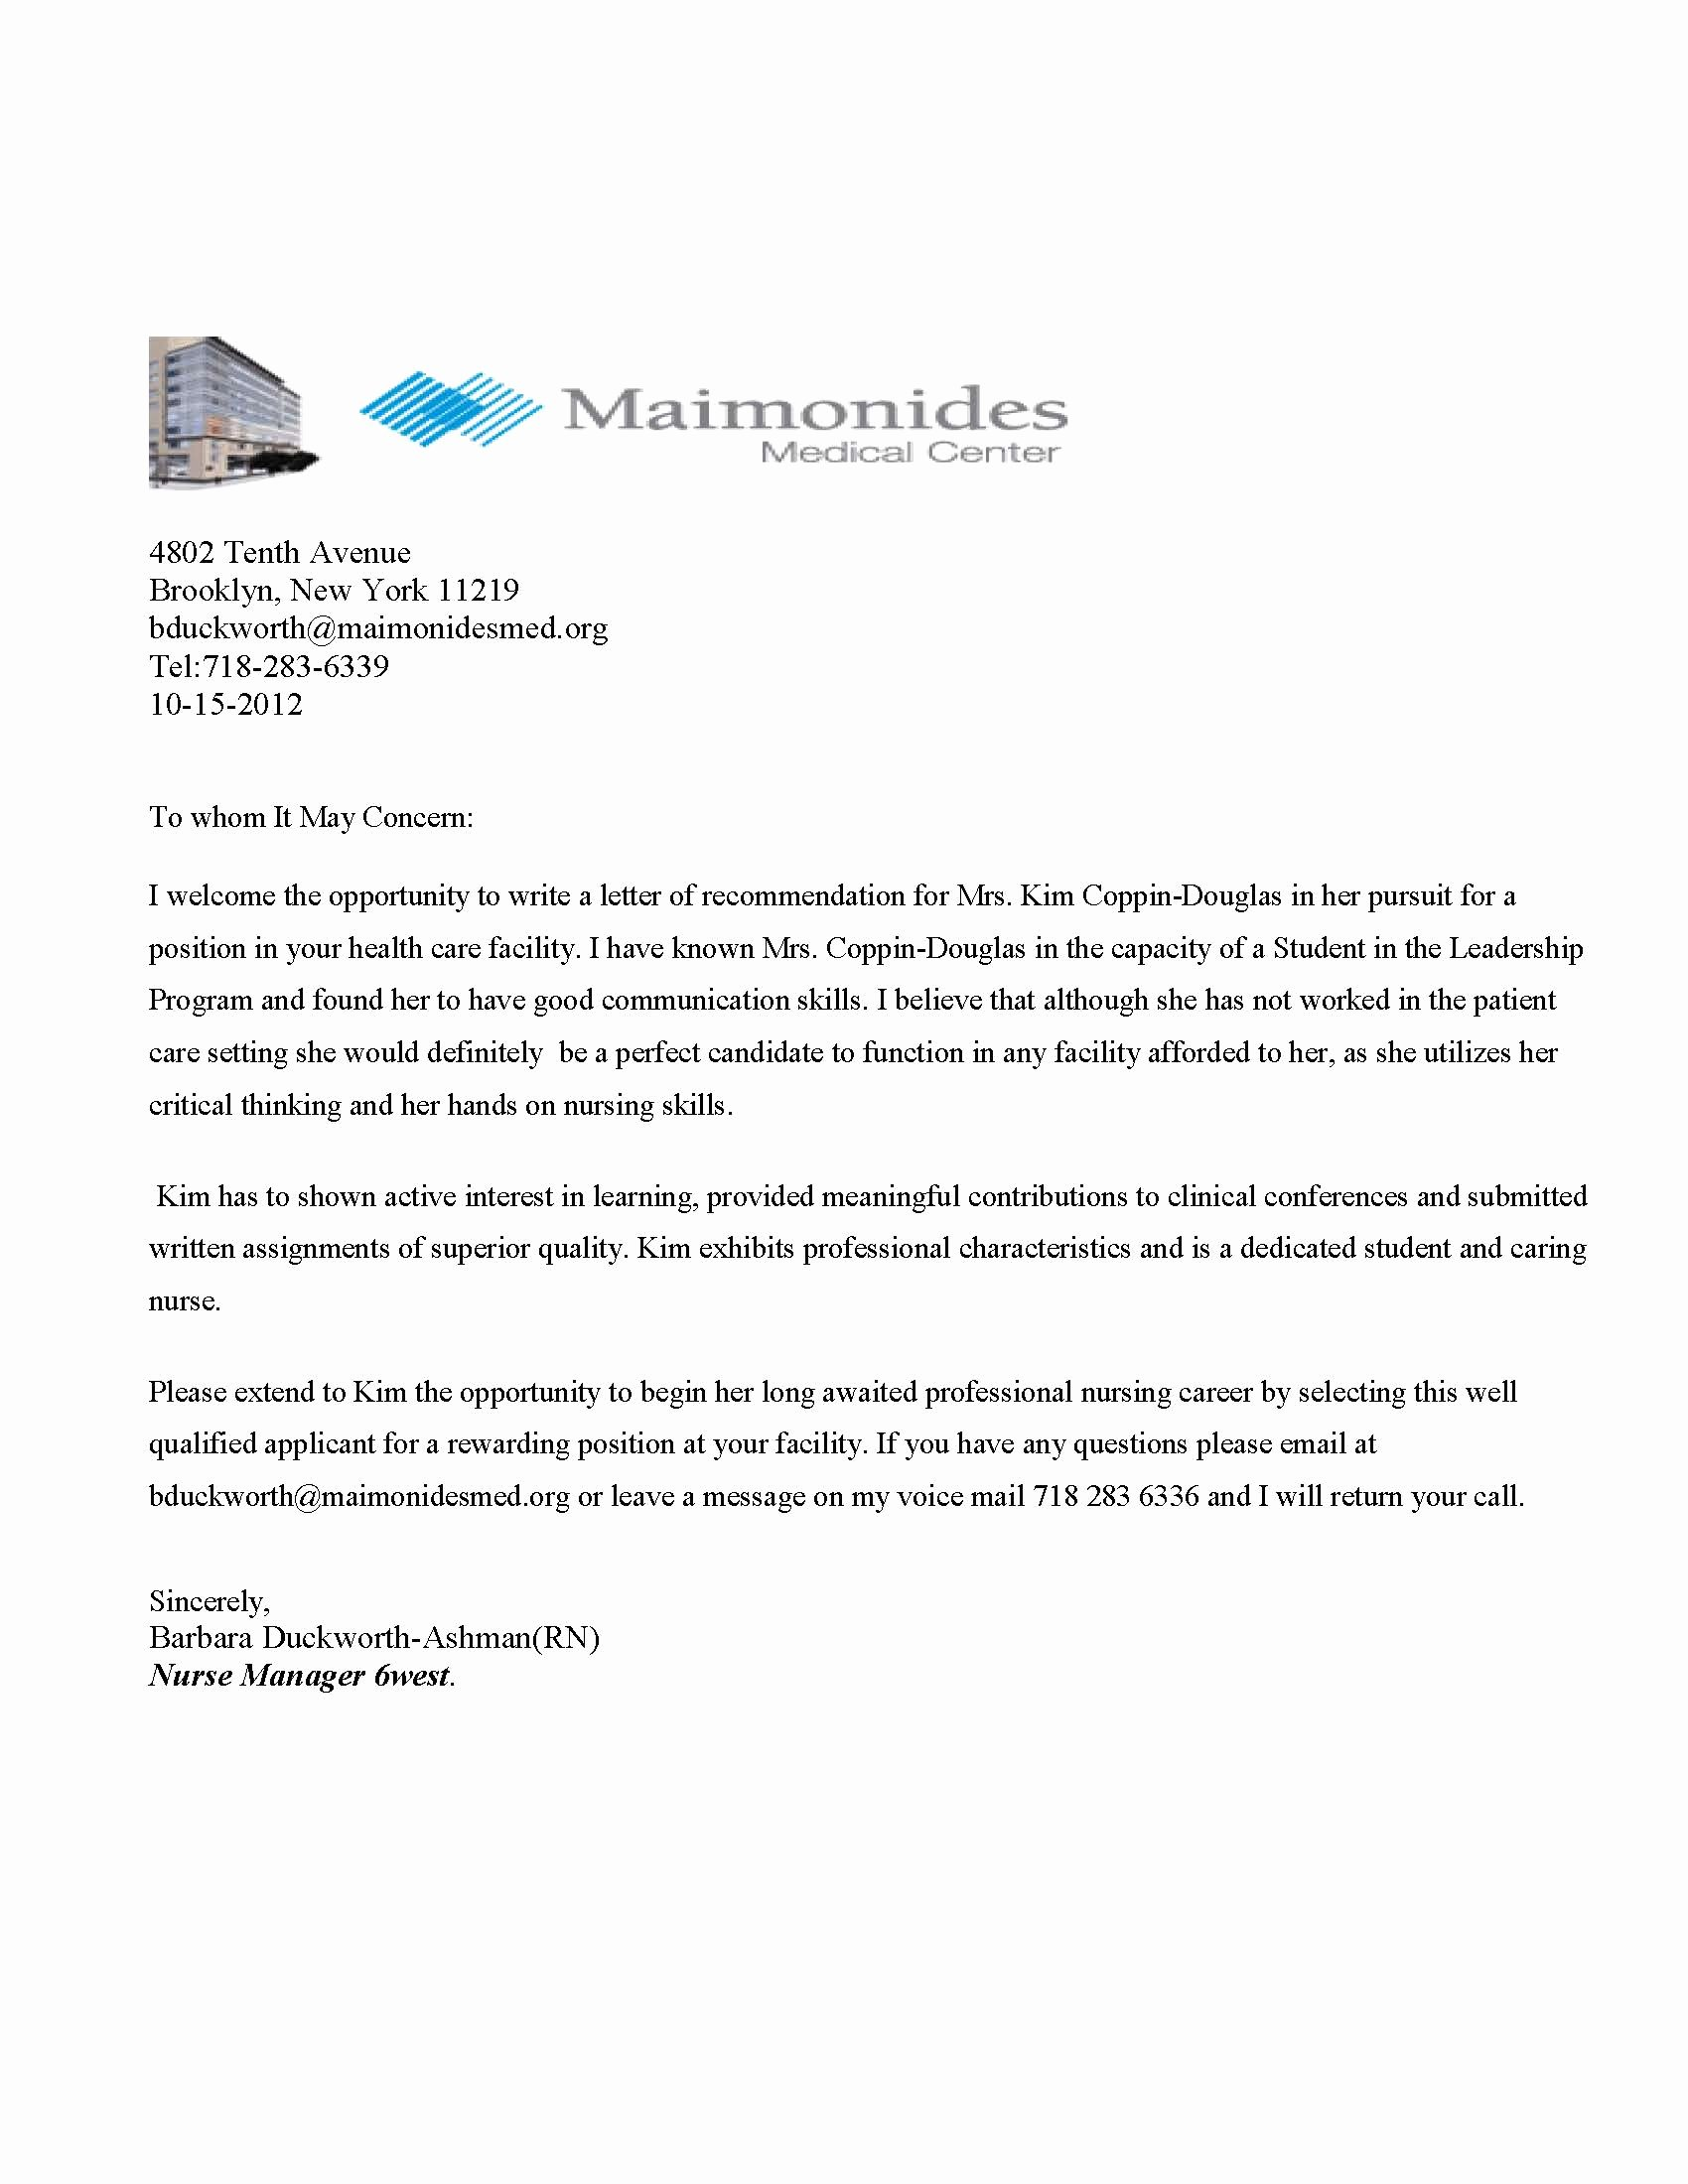 Medical School Recommendation Letter Examples Lovely Maimonides Medical Center